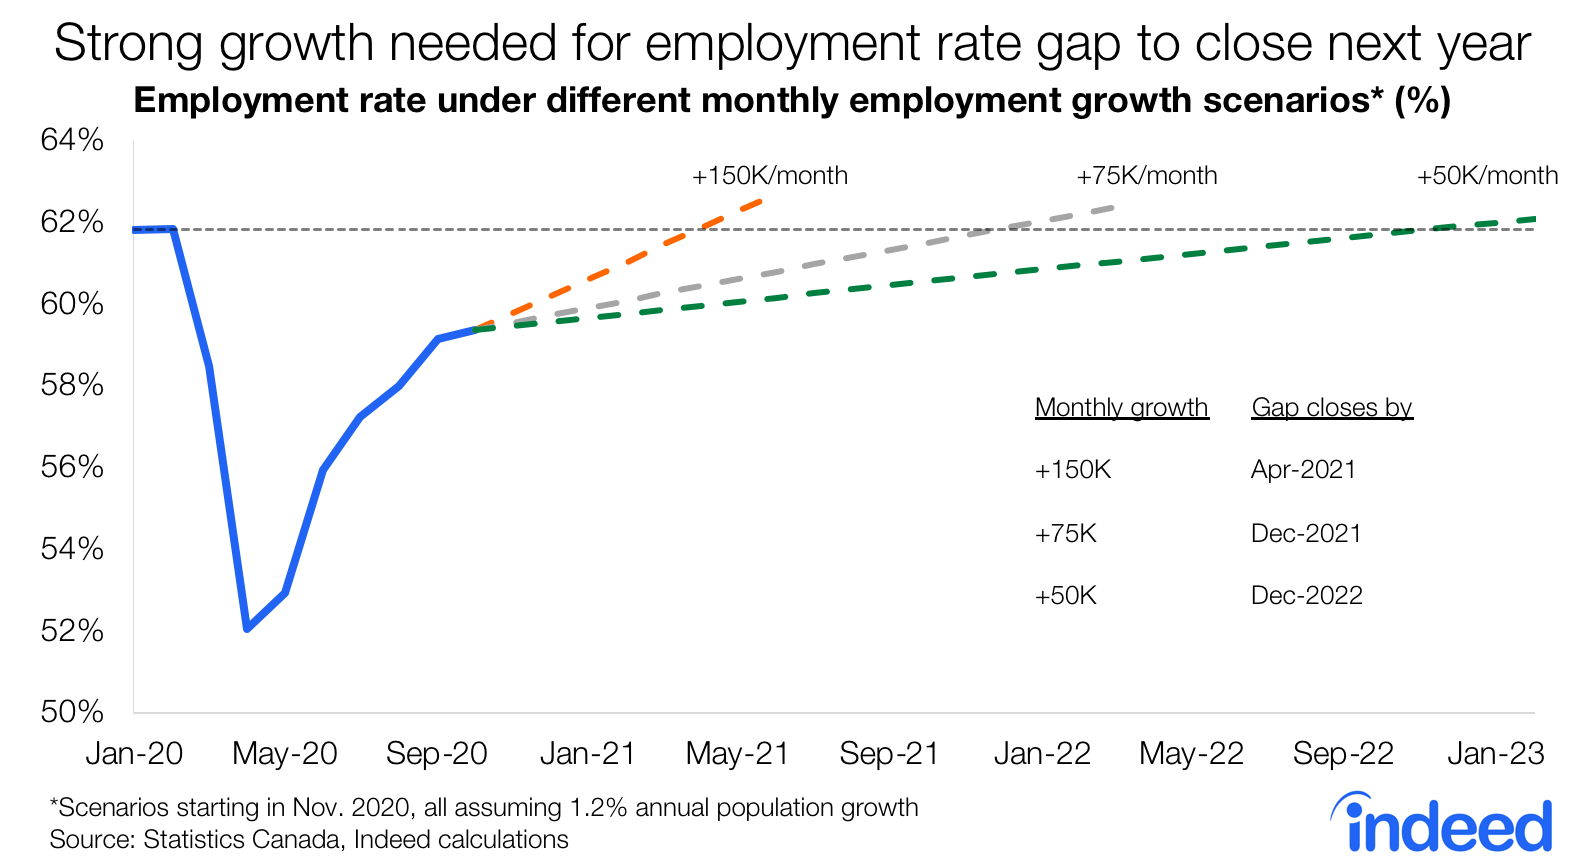 Chart showing employment growth scenarios